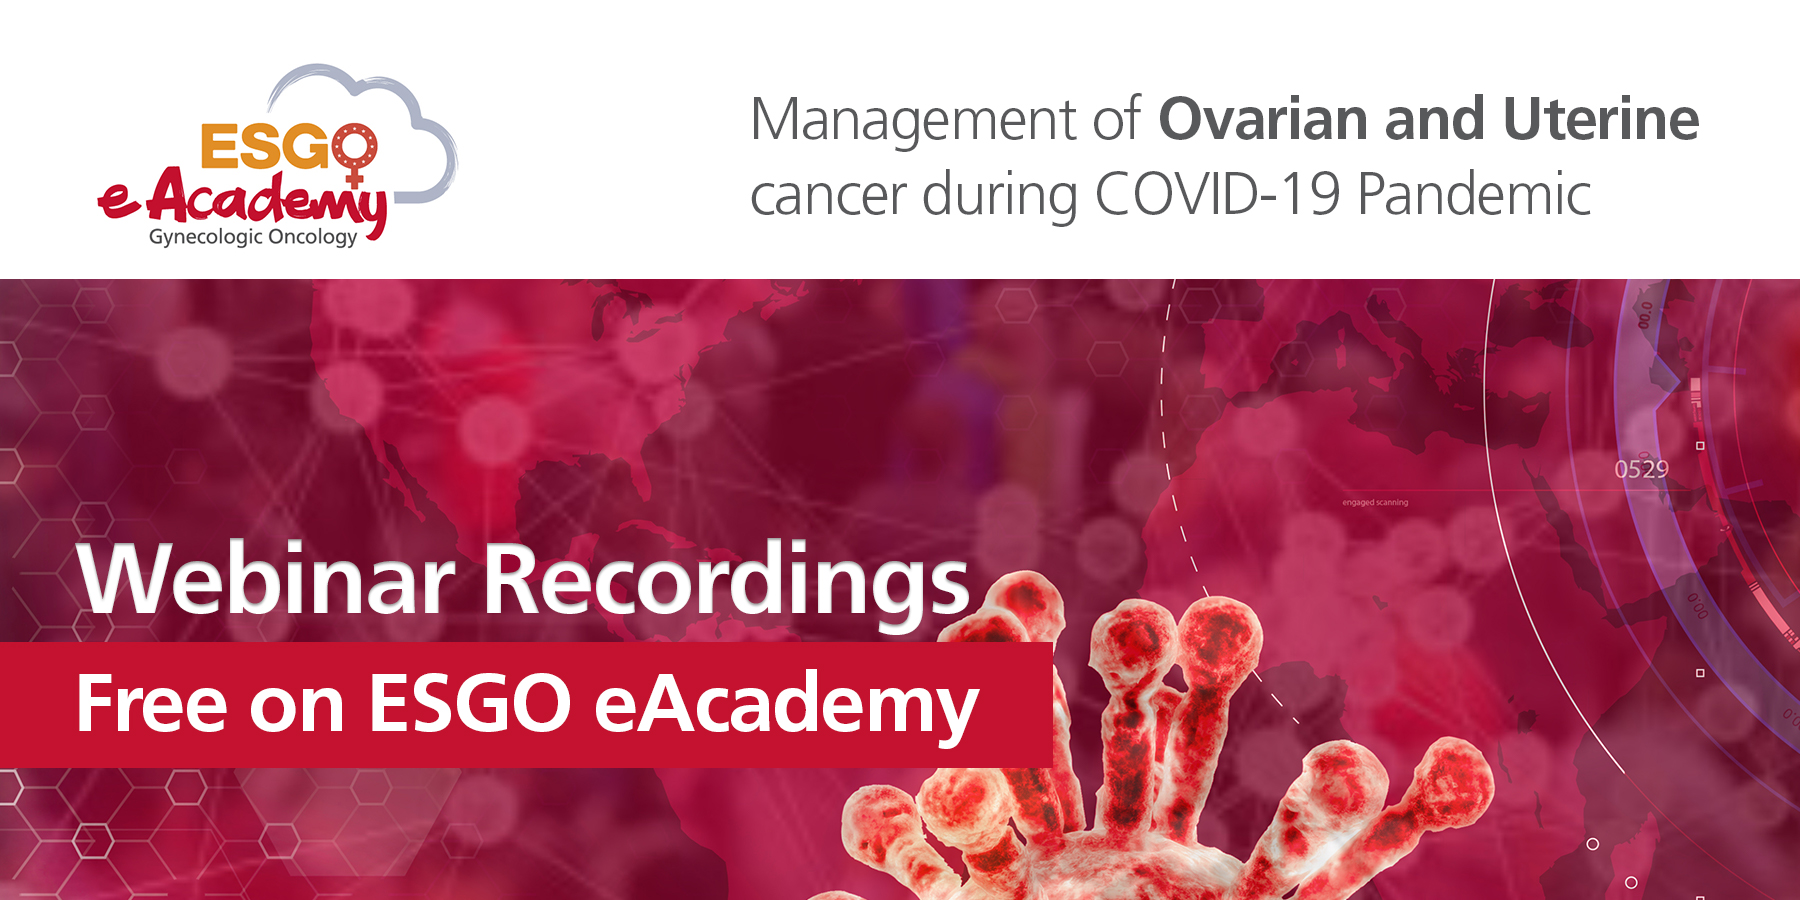 Covid 19 Webinars Esgo European Society Of Gynaecological Oncology Esgo European Society Of Gynaecological Oncology